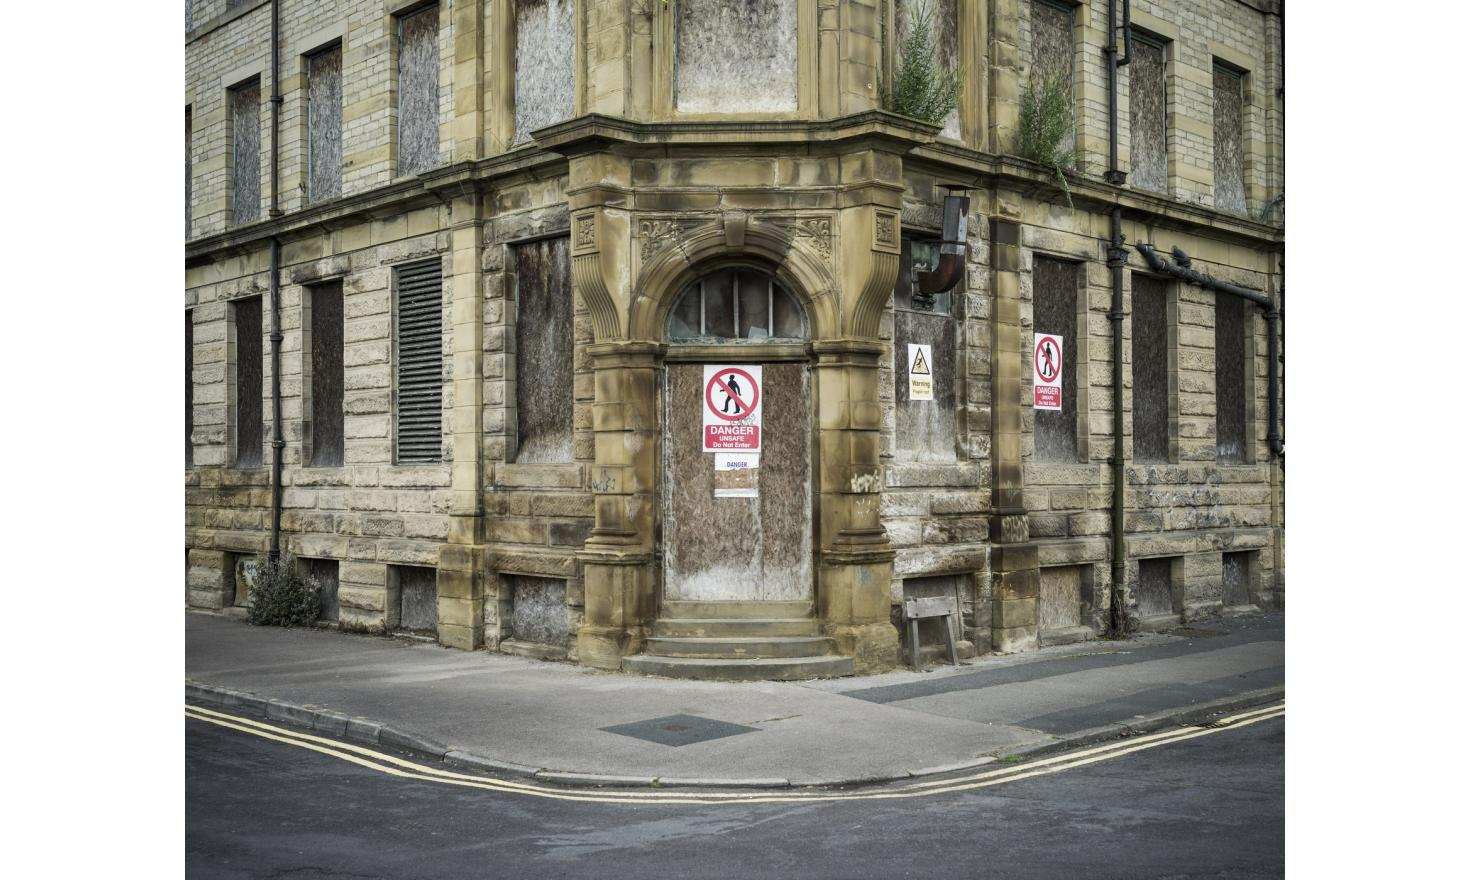 A former textile mill in the center of Bradford (Yorkshire). The town, a former Labour stronghold, voted overwhelmingly to leave the EU during the British referendum on EU membership.